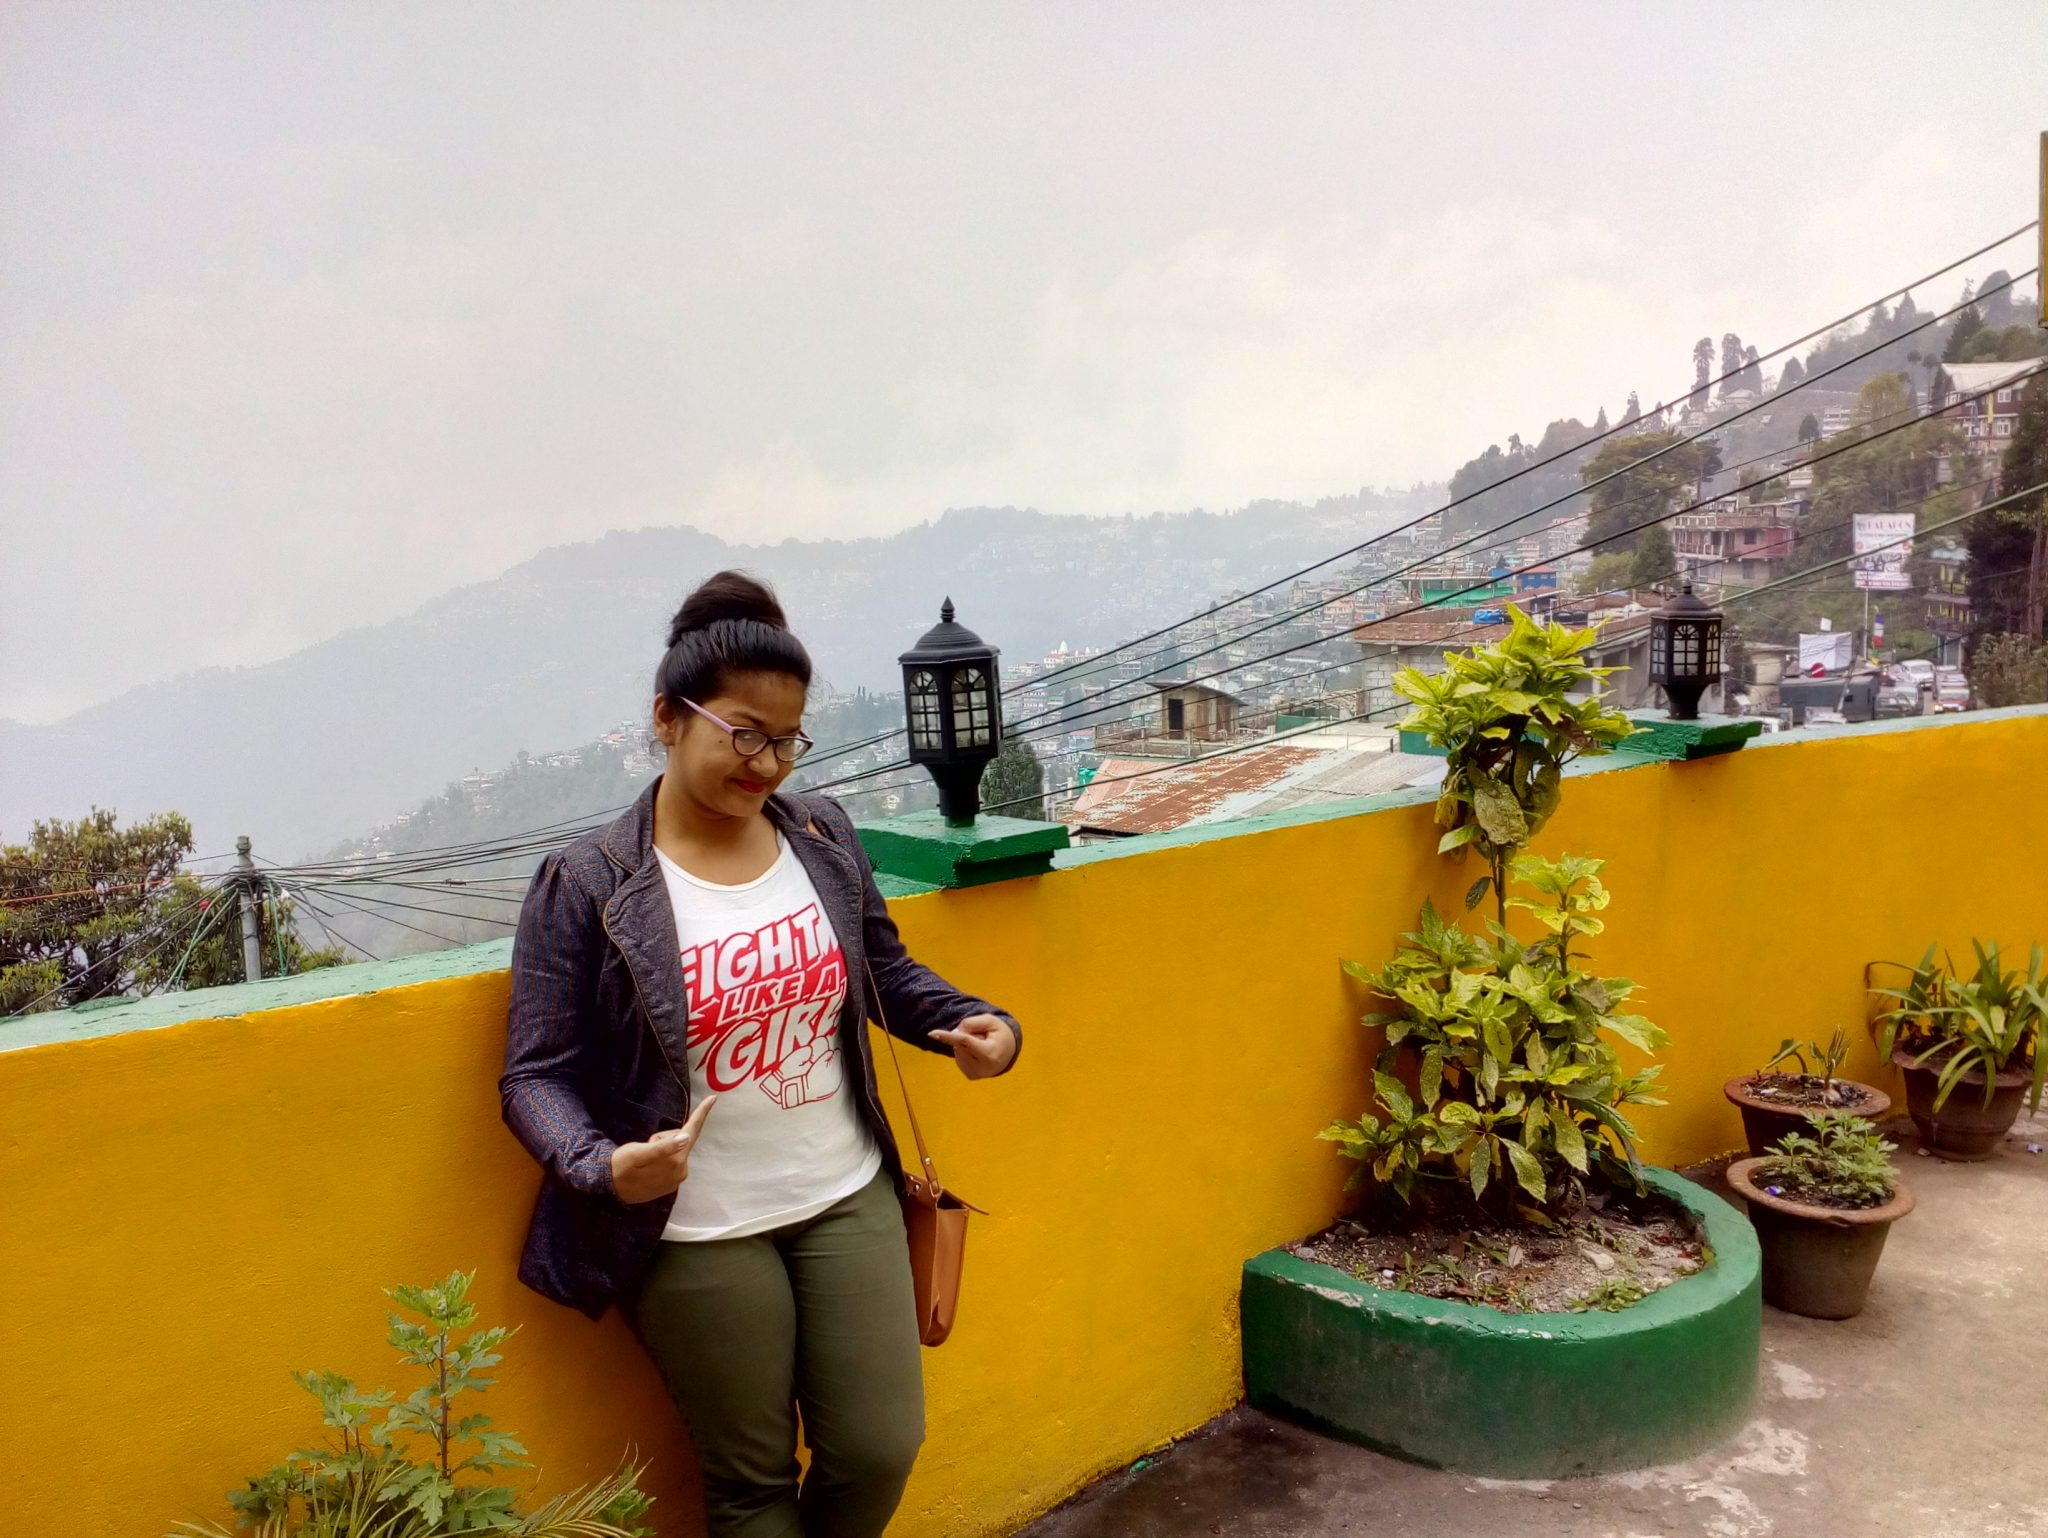 ankita sagar travel blogger, wanderer, from Odisha India. Travel blogger at The Art of Travel